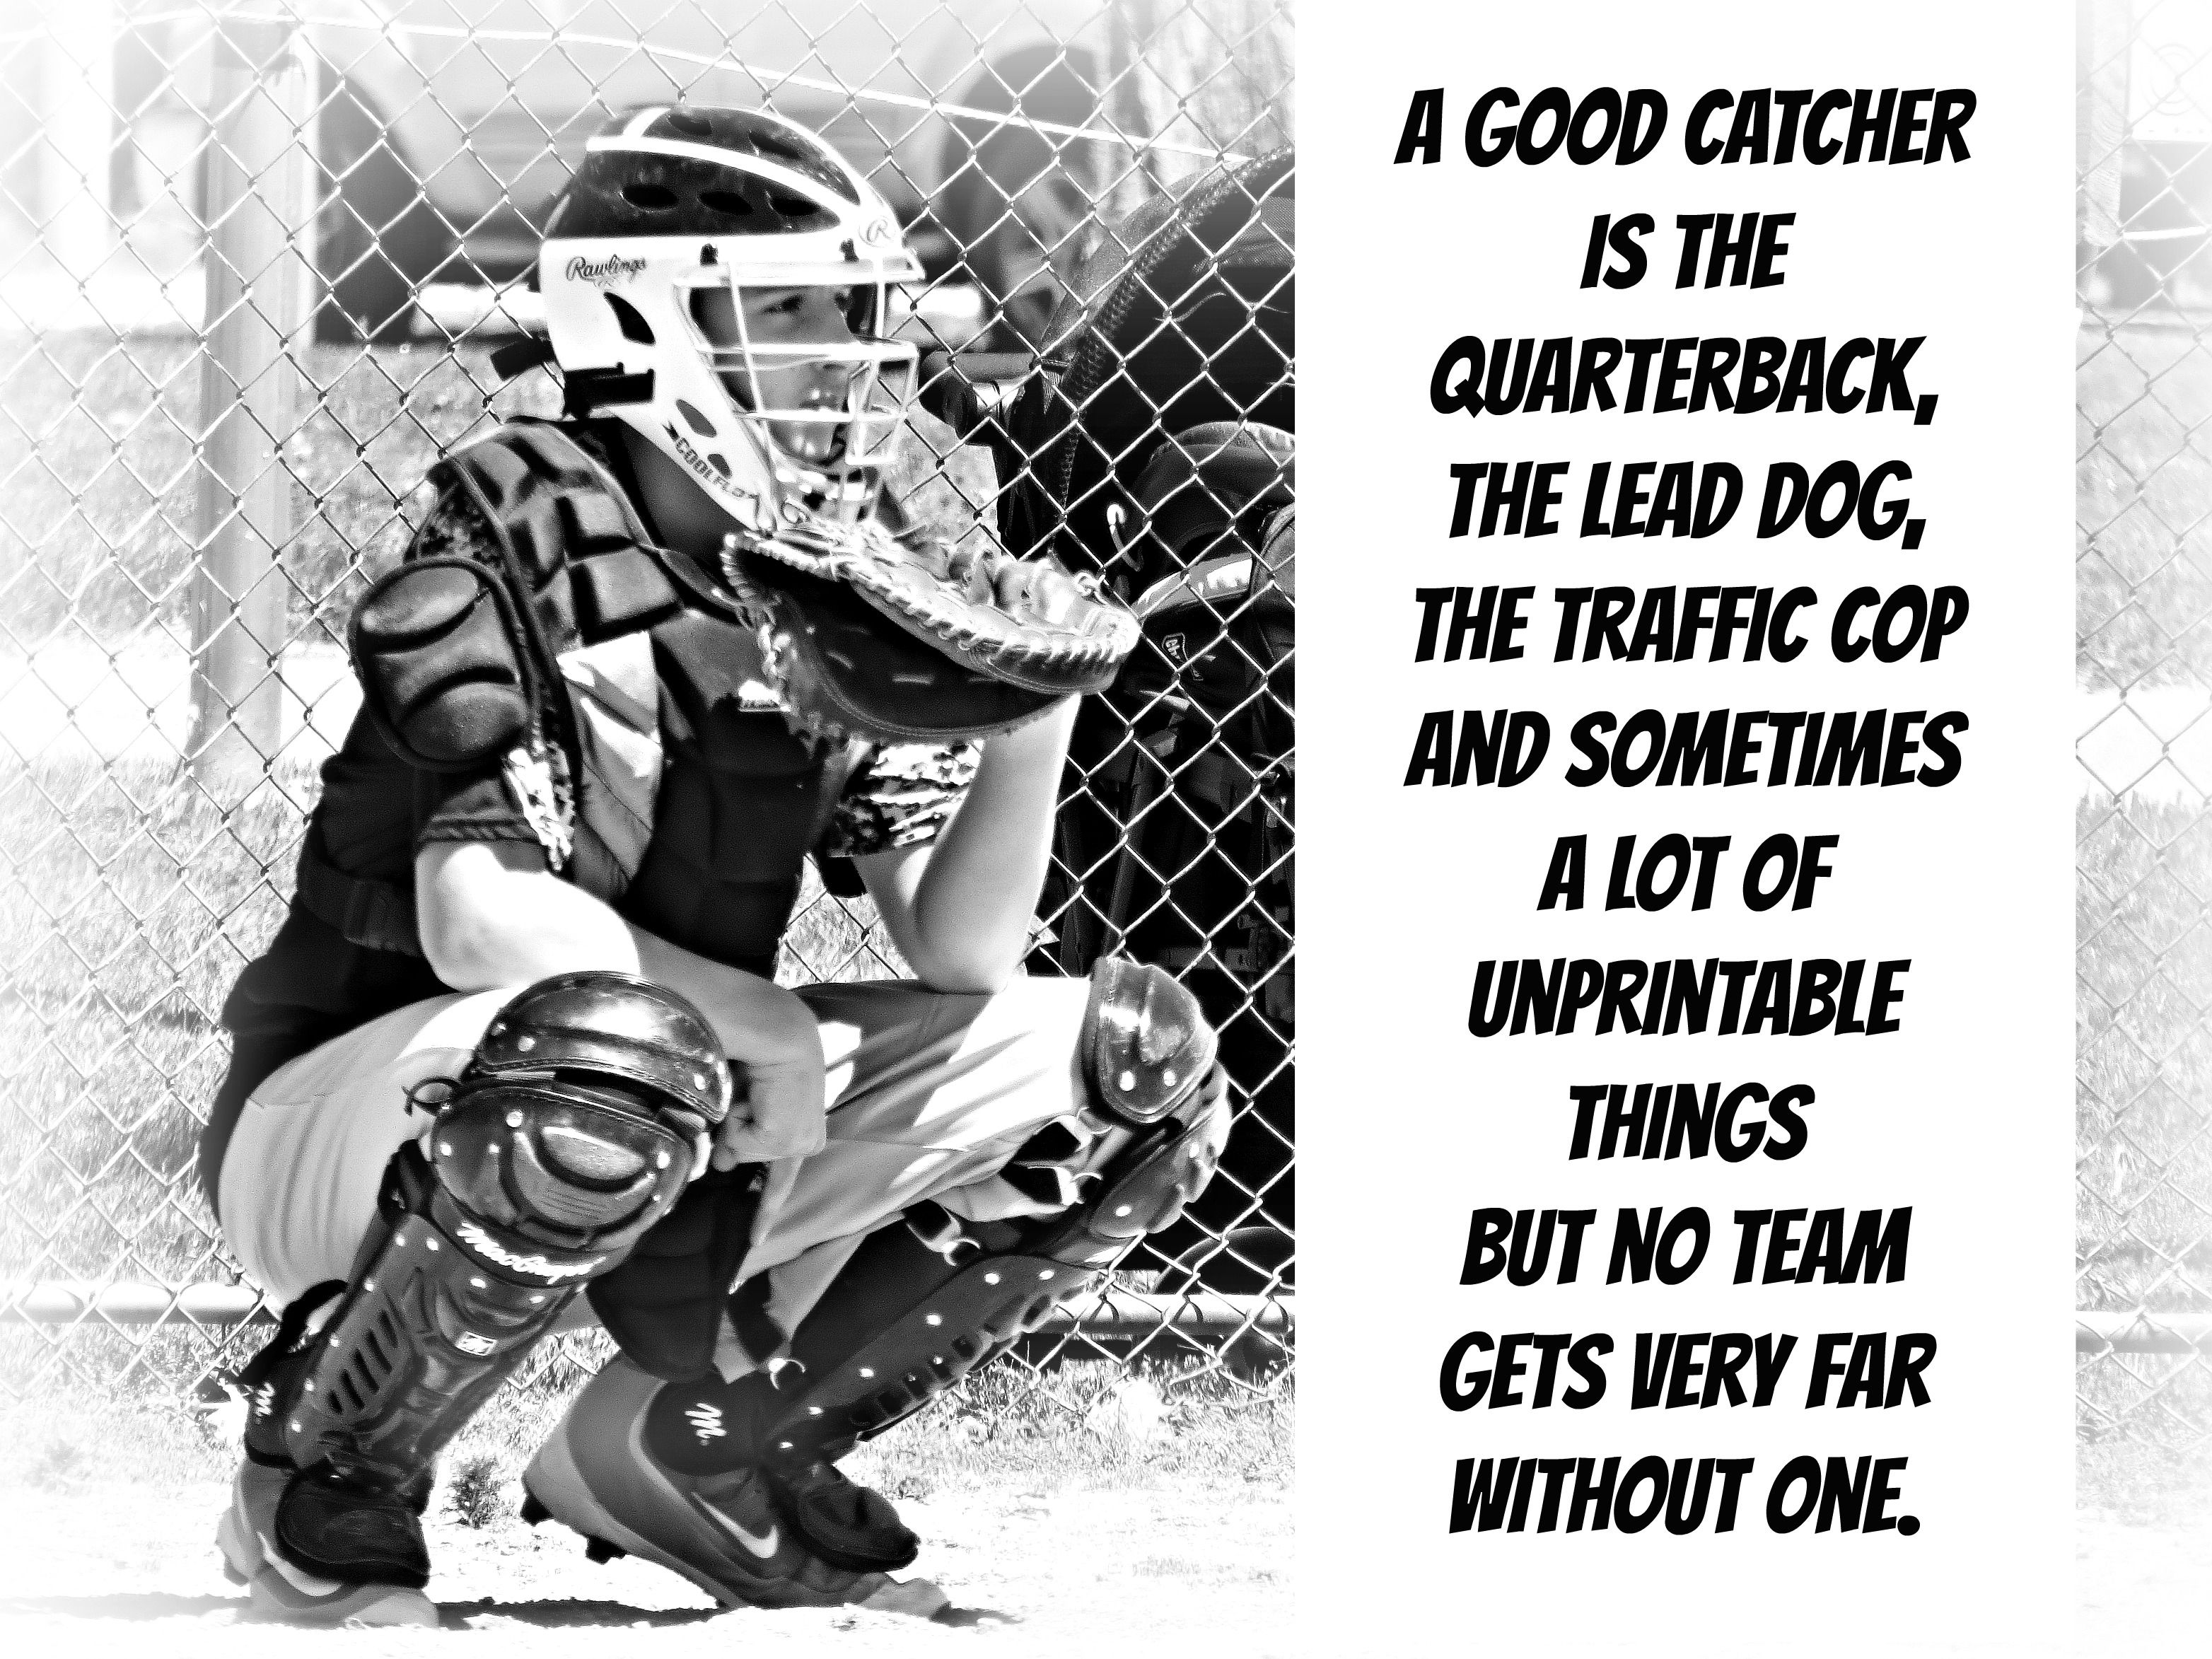 A Good Catcher Is The Quarterback The Lead Dog The Traffic Cop